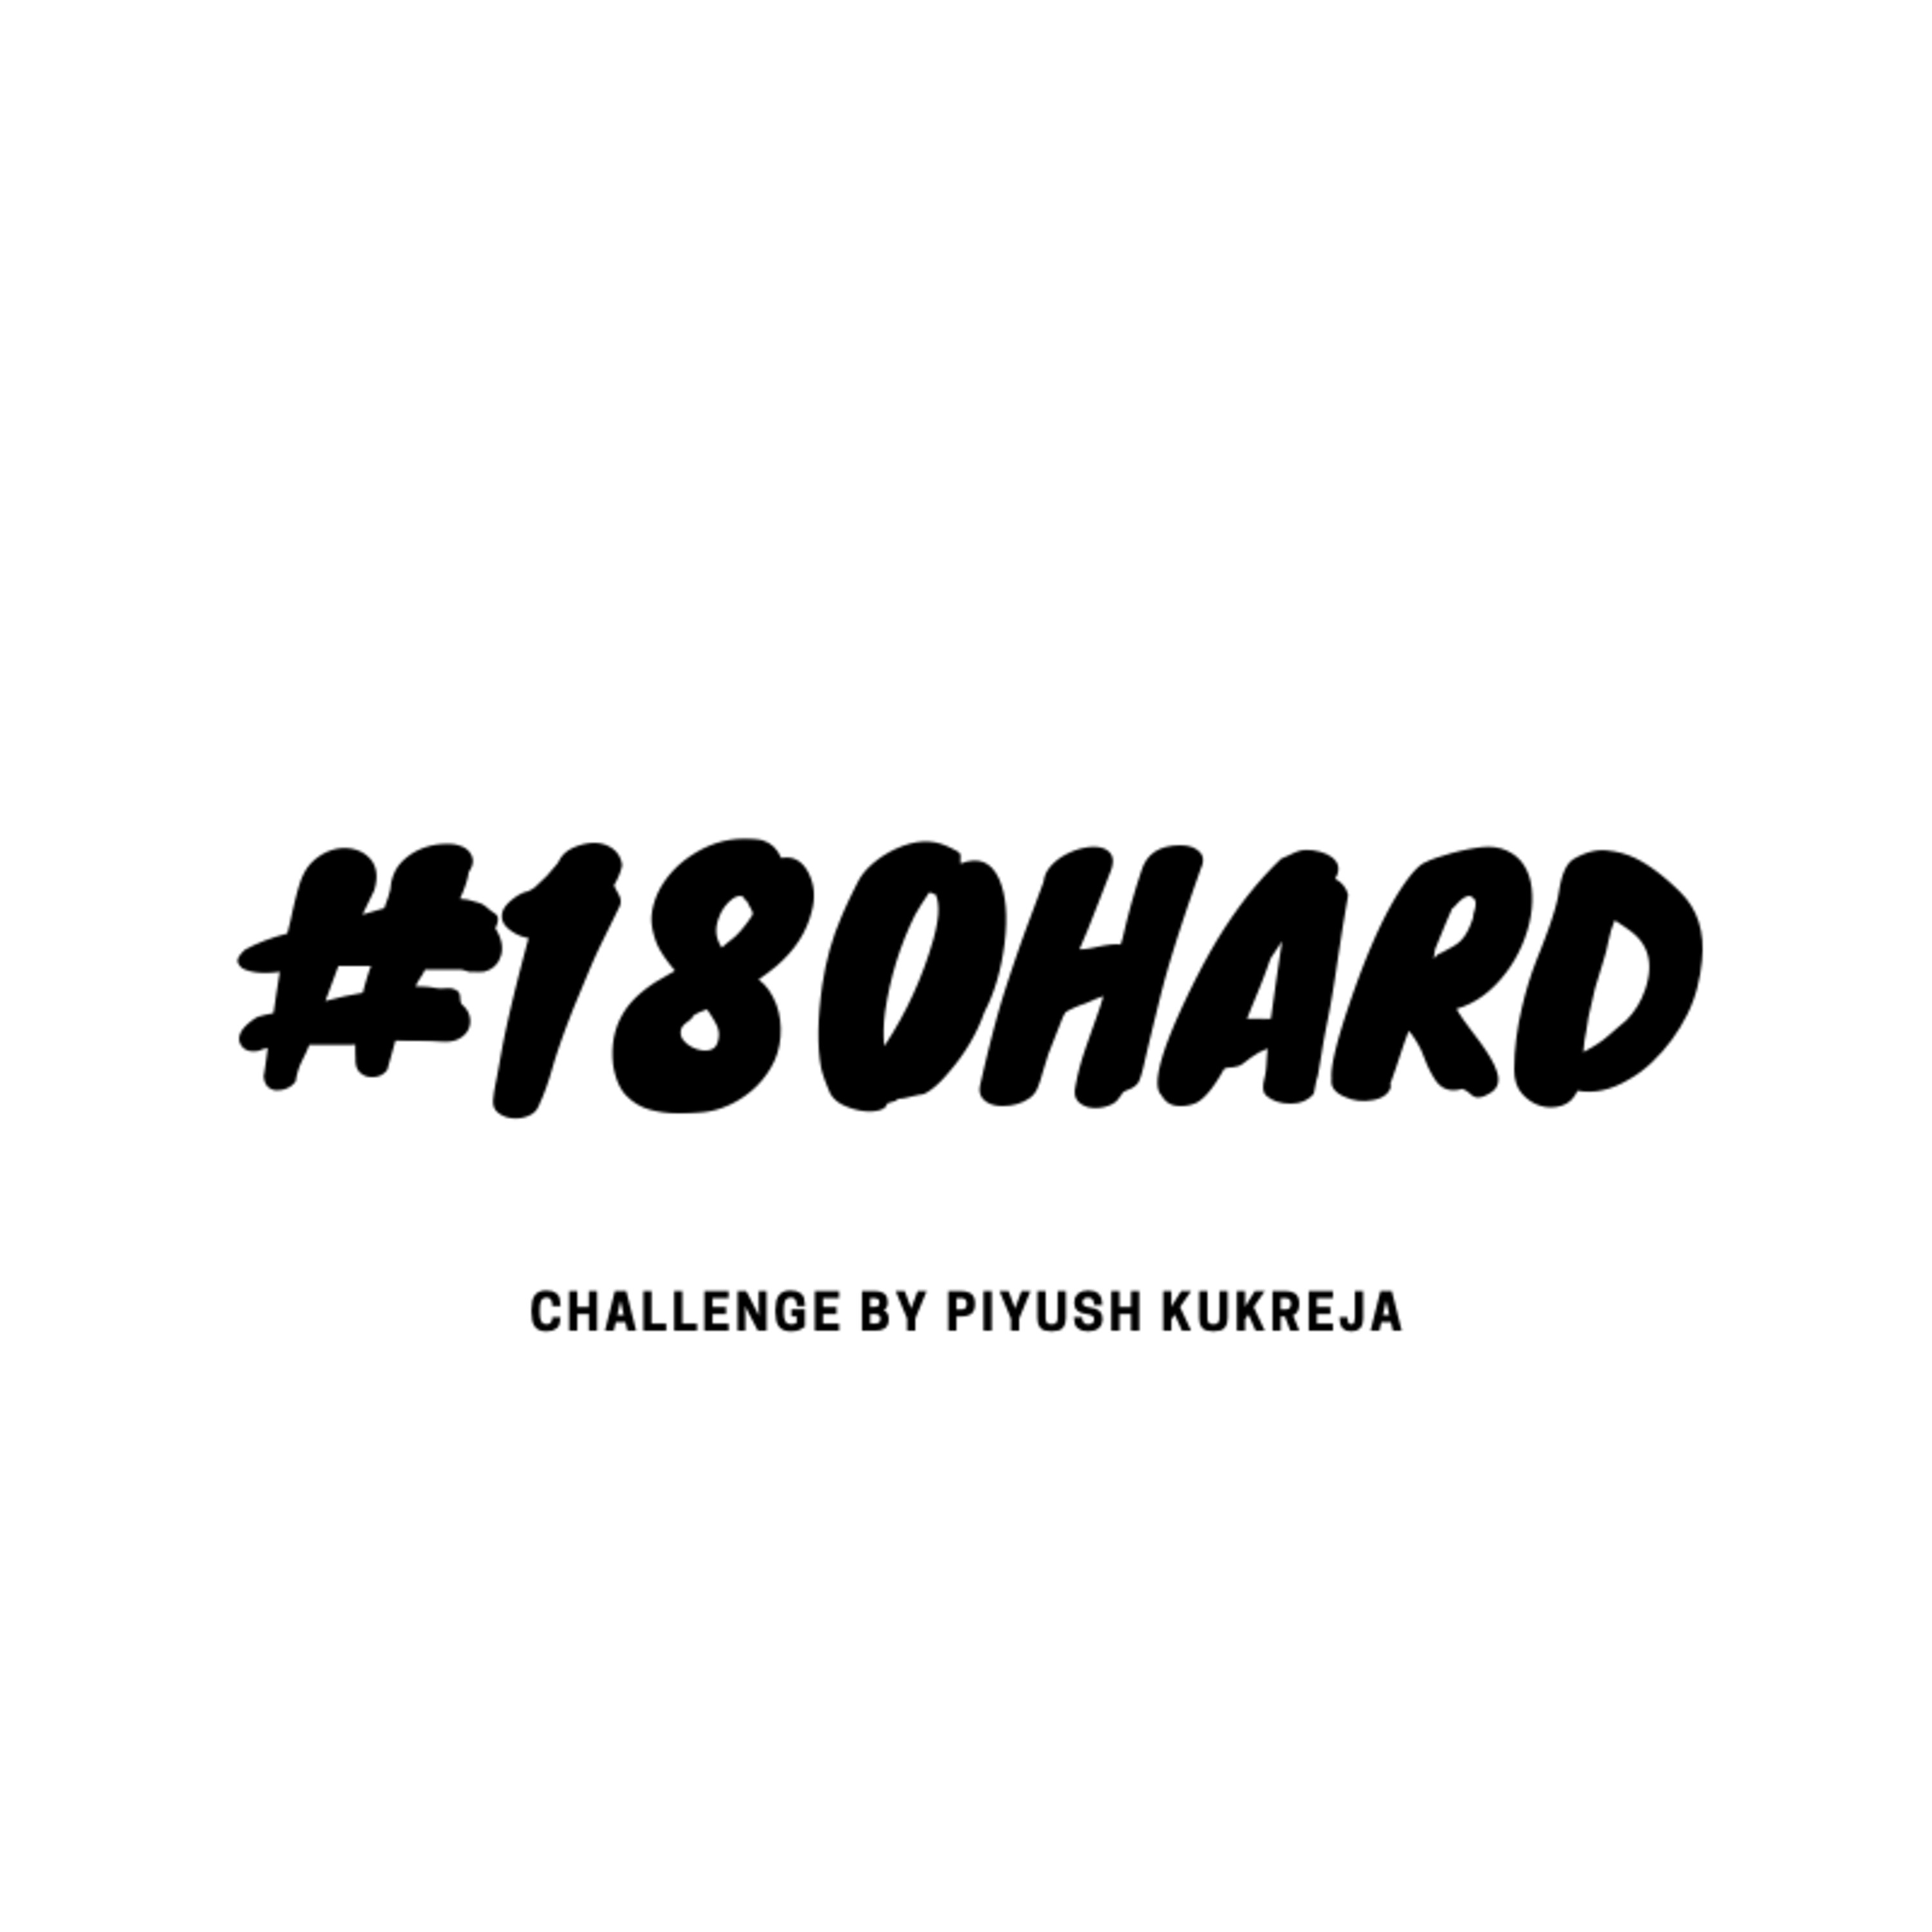 All about my New Challenge #180Hard | #E031